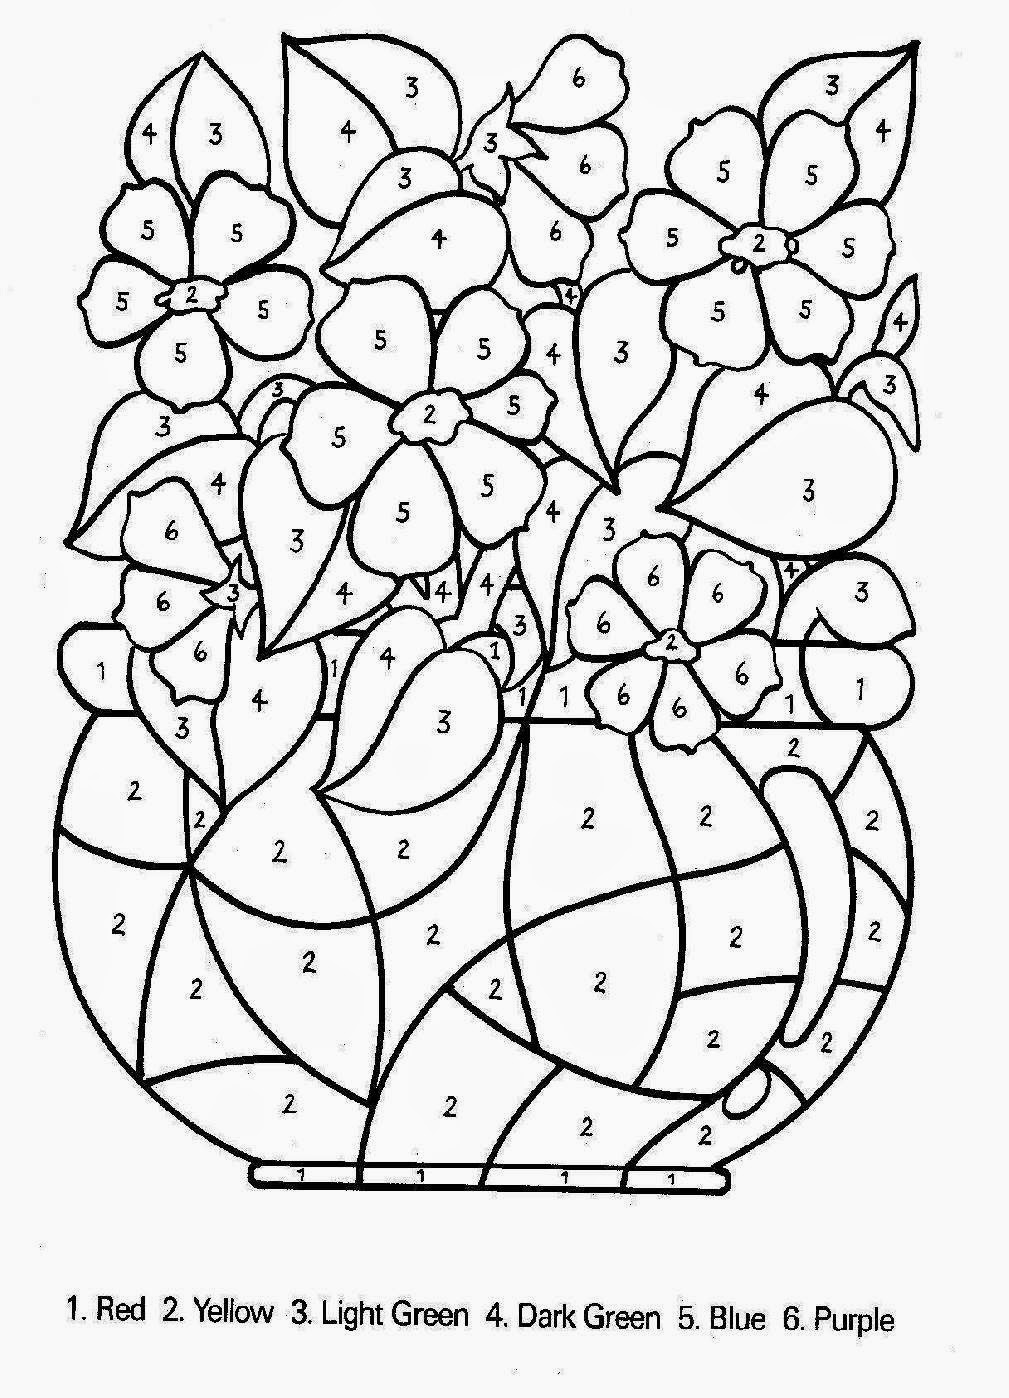 coloring pages using color words - photo#33